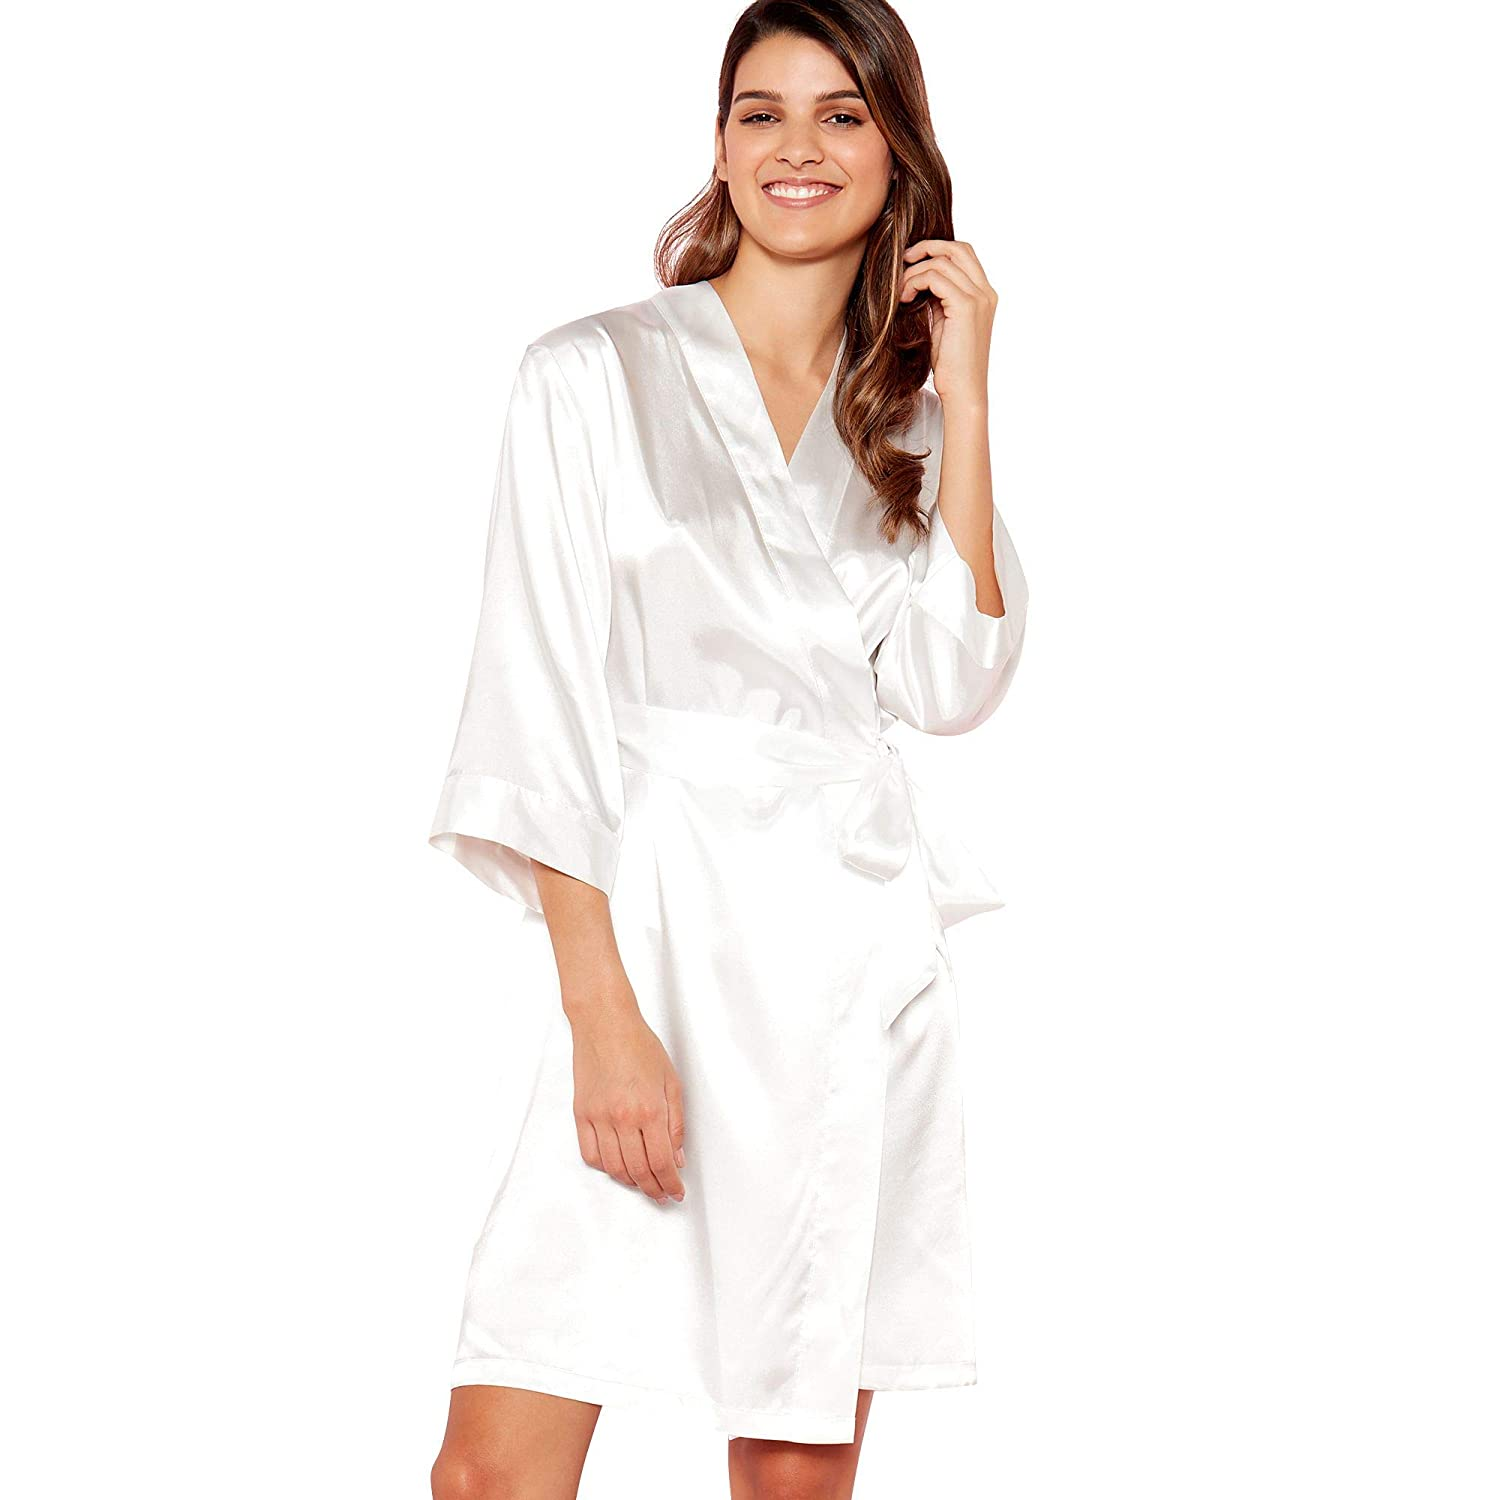 Debenhams The Collection Womens Ivory  Mrs B  Satin Dressing Gown  The  Collection  Amazon.co.uk  Clothing 3fb36578b